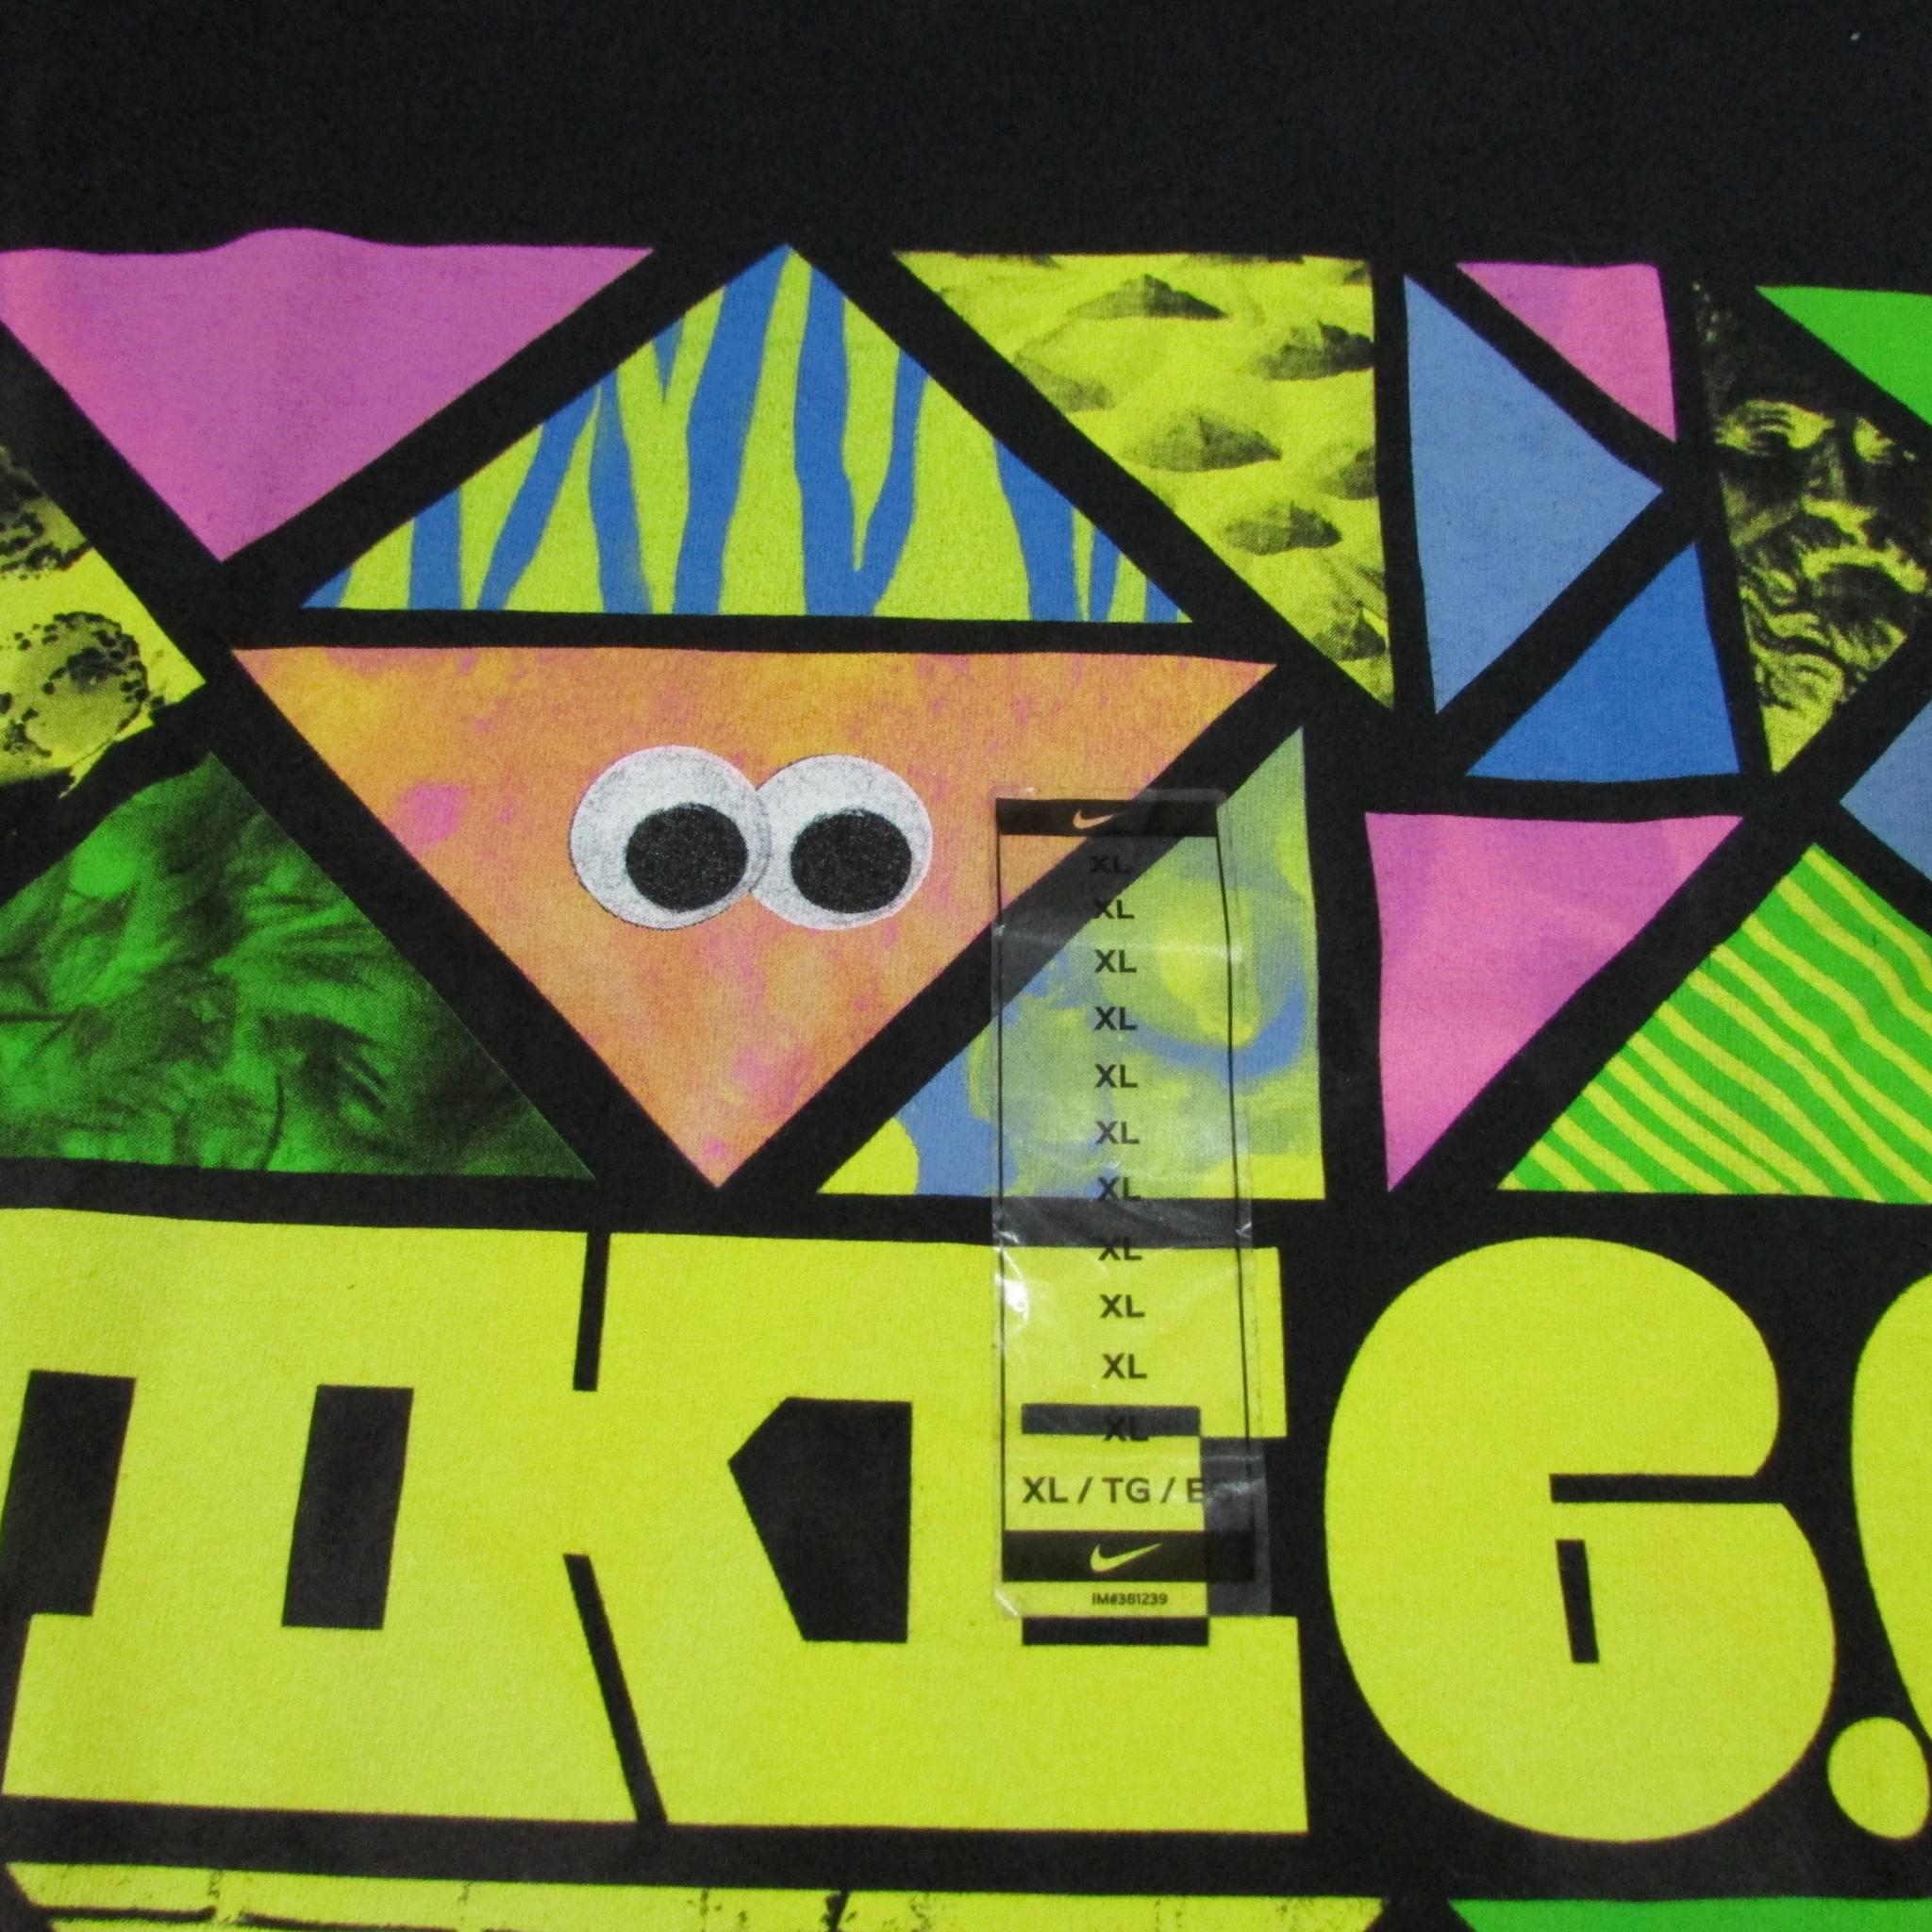 NIKE 6.0 Skateboard SB Graphic T-Shirt Sz XL